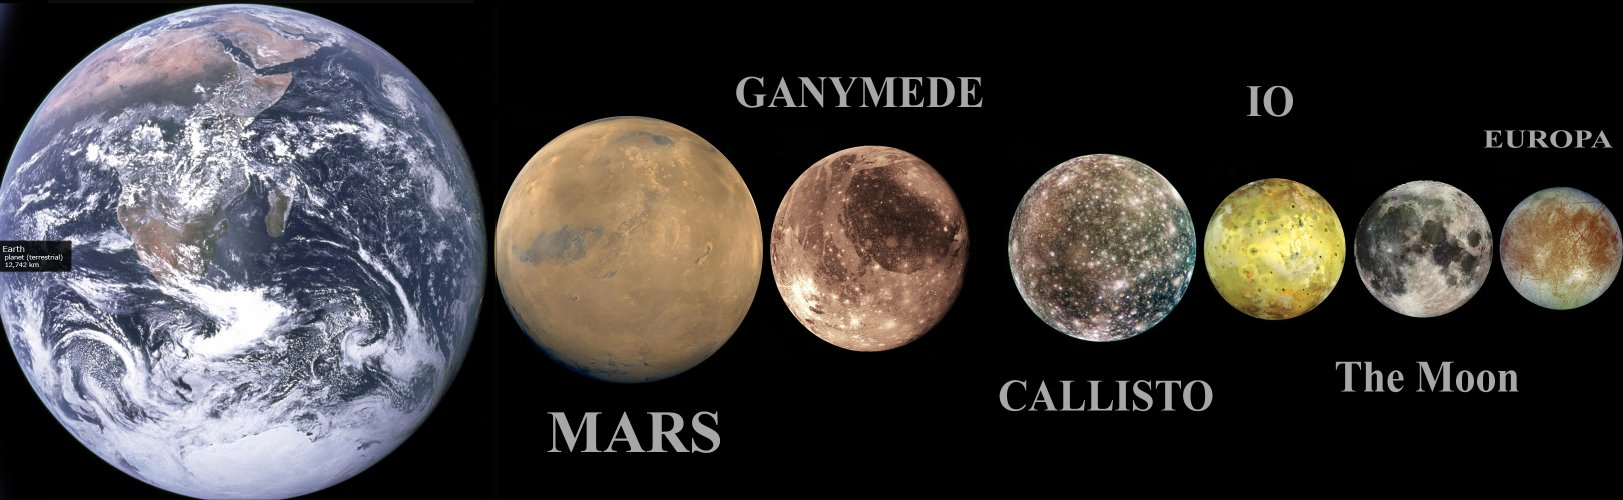 is there a possibility that life can exist on planets and moons within our solar system Where life might live beyond earth – this diagram compares the planets of our own inner solar system for possible planets there is life.